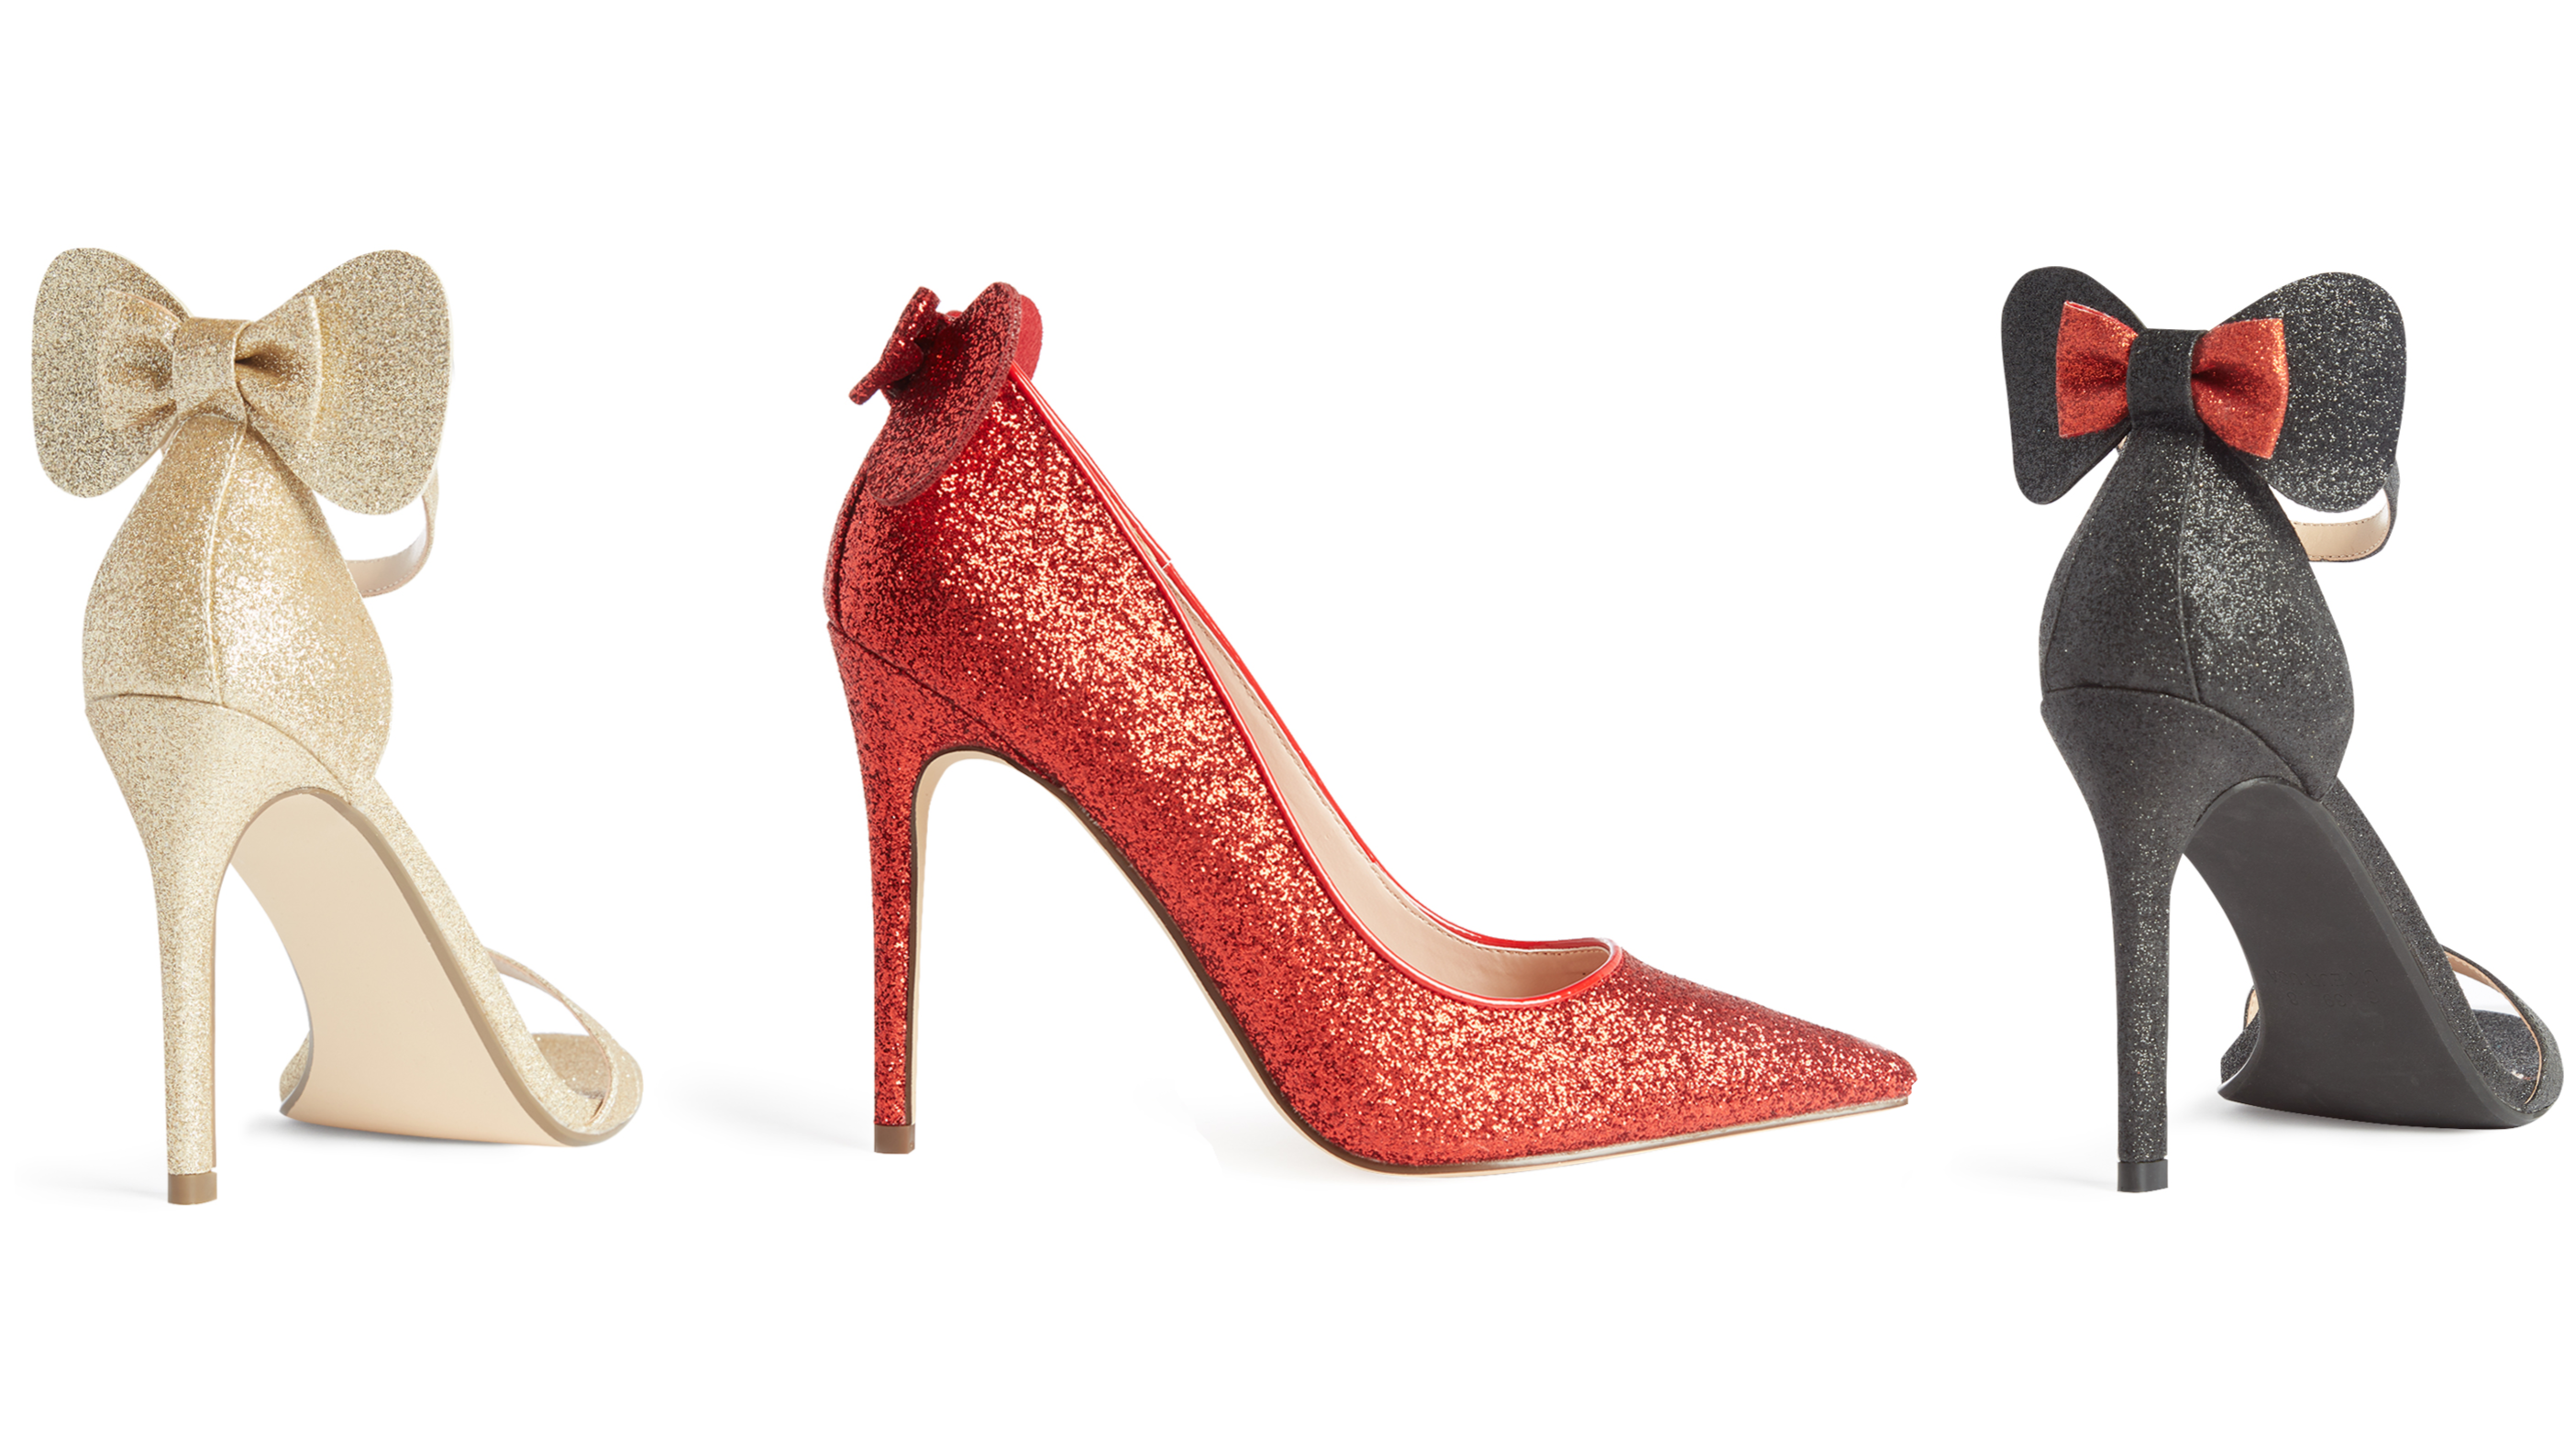 59bf6c0095e5fc Primark s Glittery Minnie Mouse Heels Are Perfect For Party Season ...